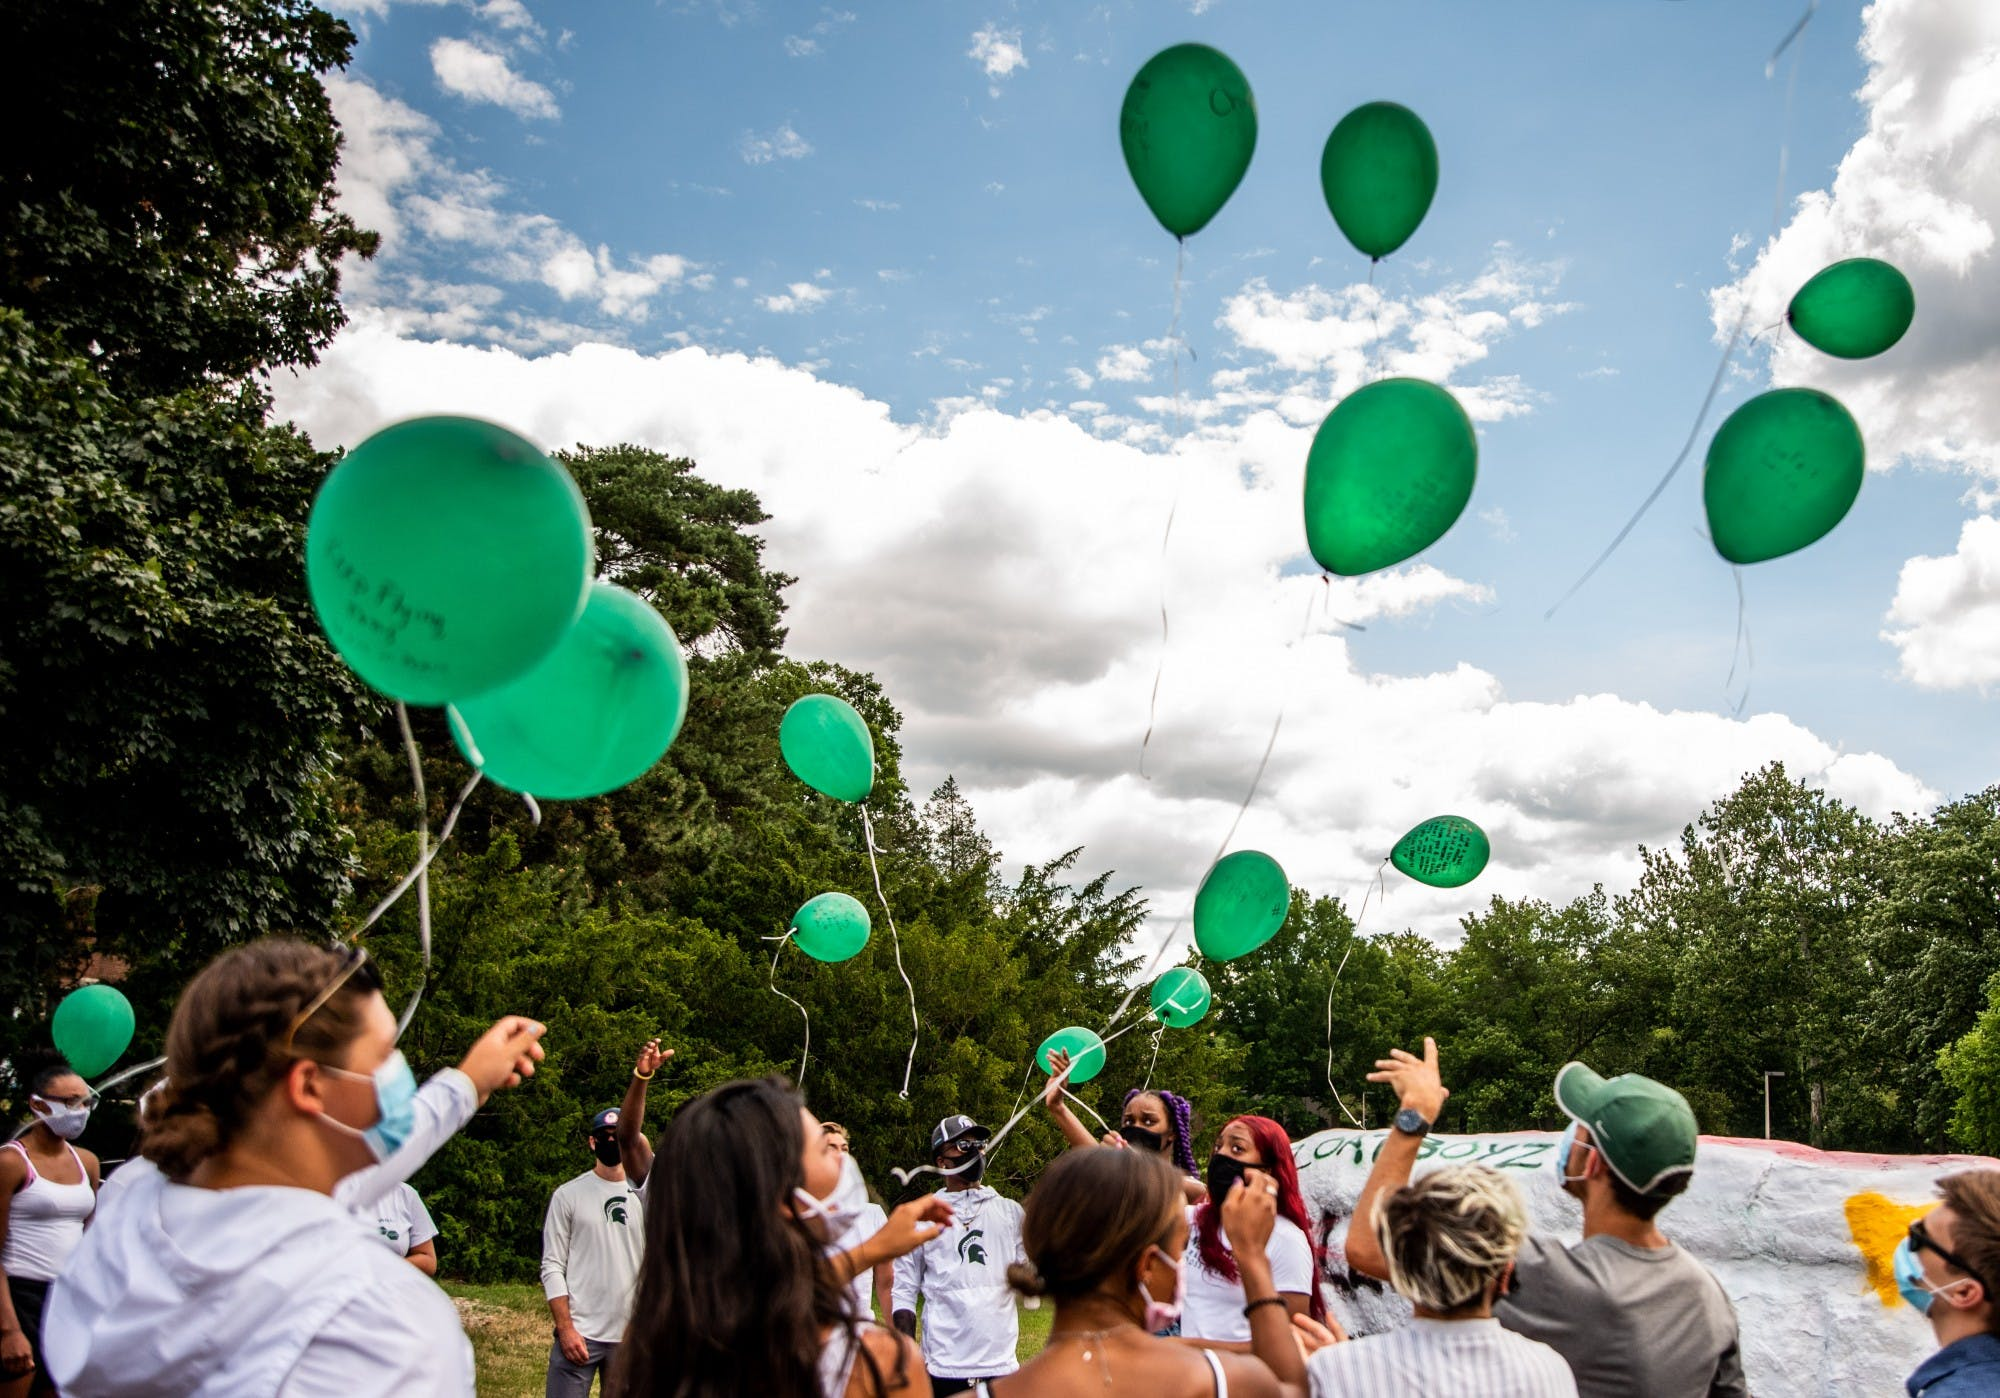 A group of people wearing face masks stand outside and release green balloons into the sky.